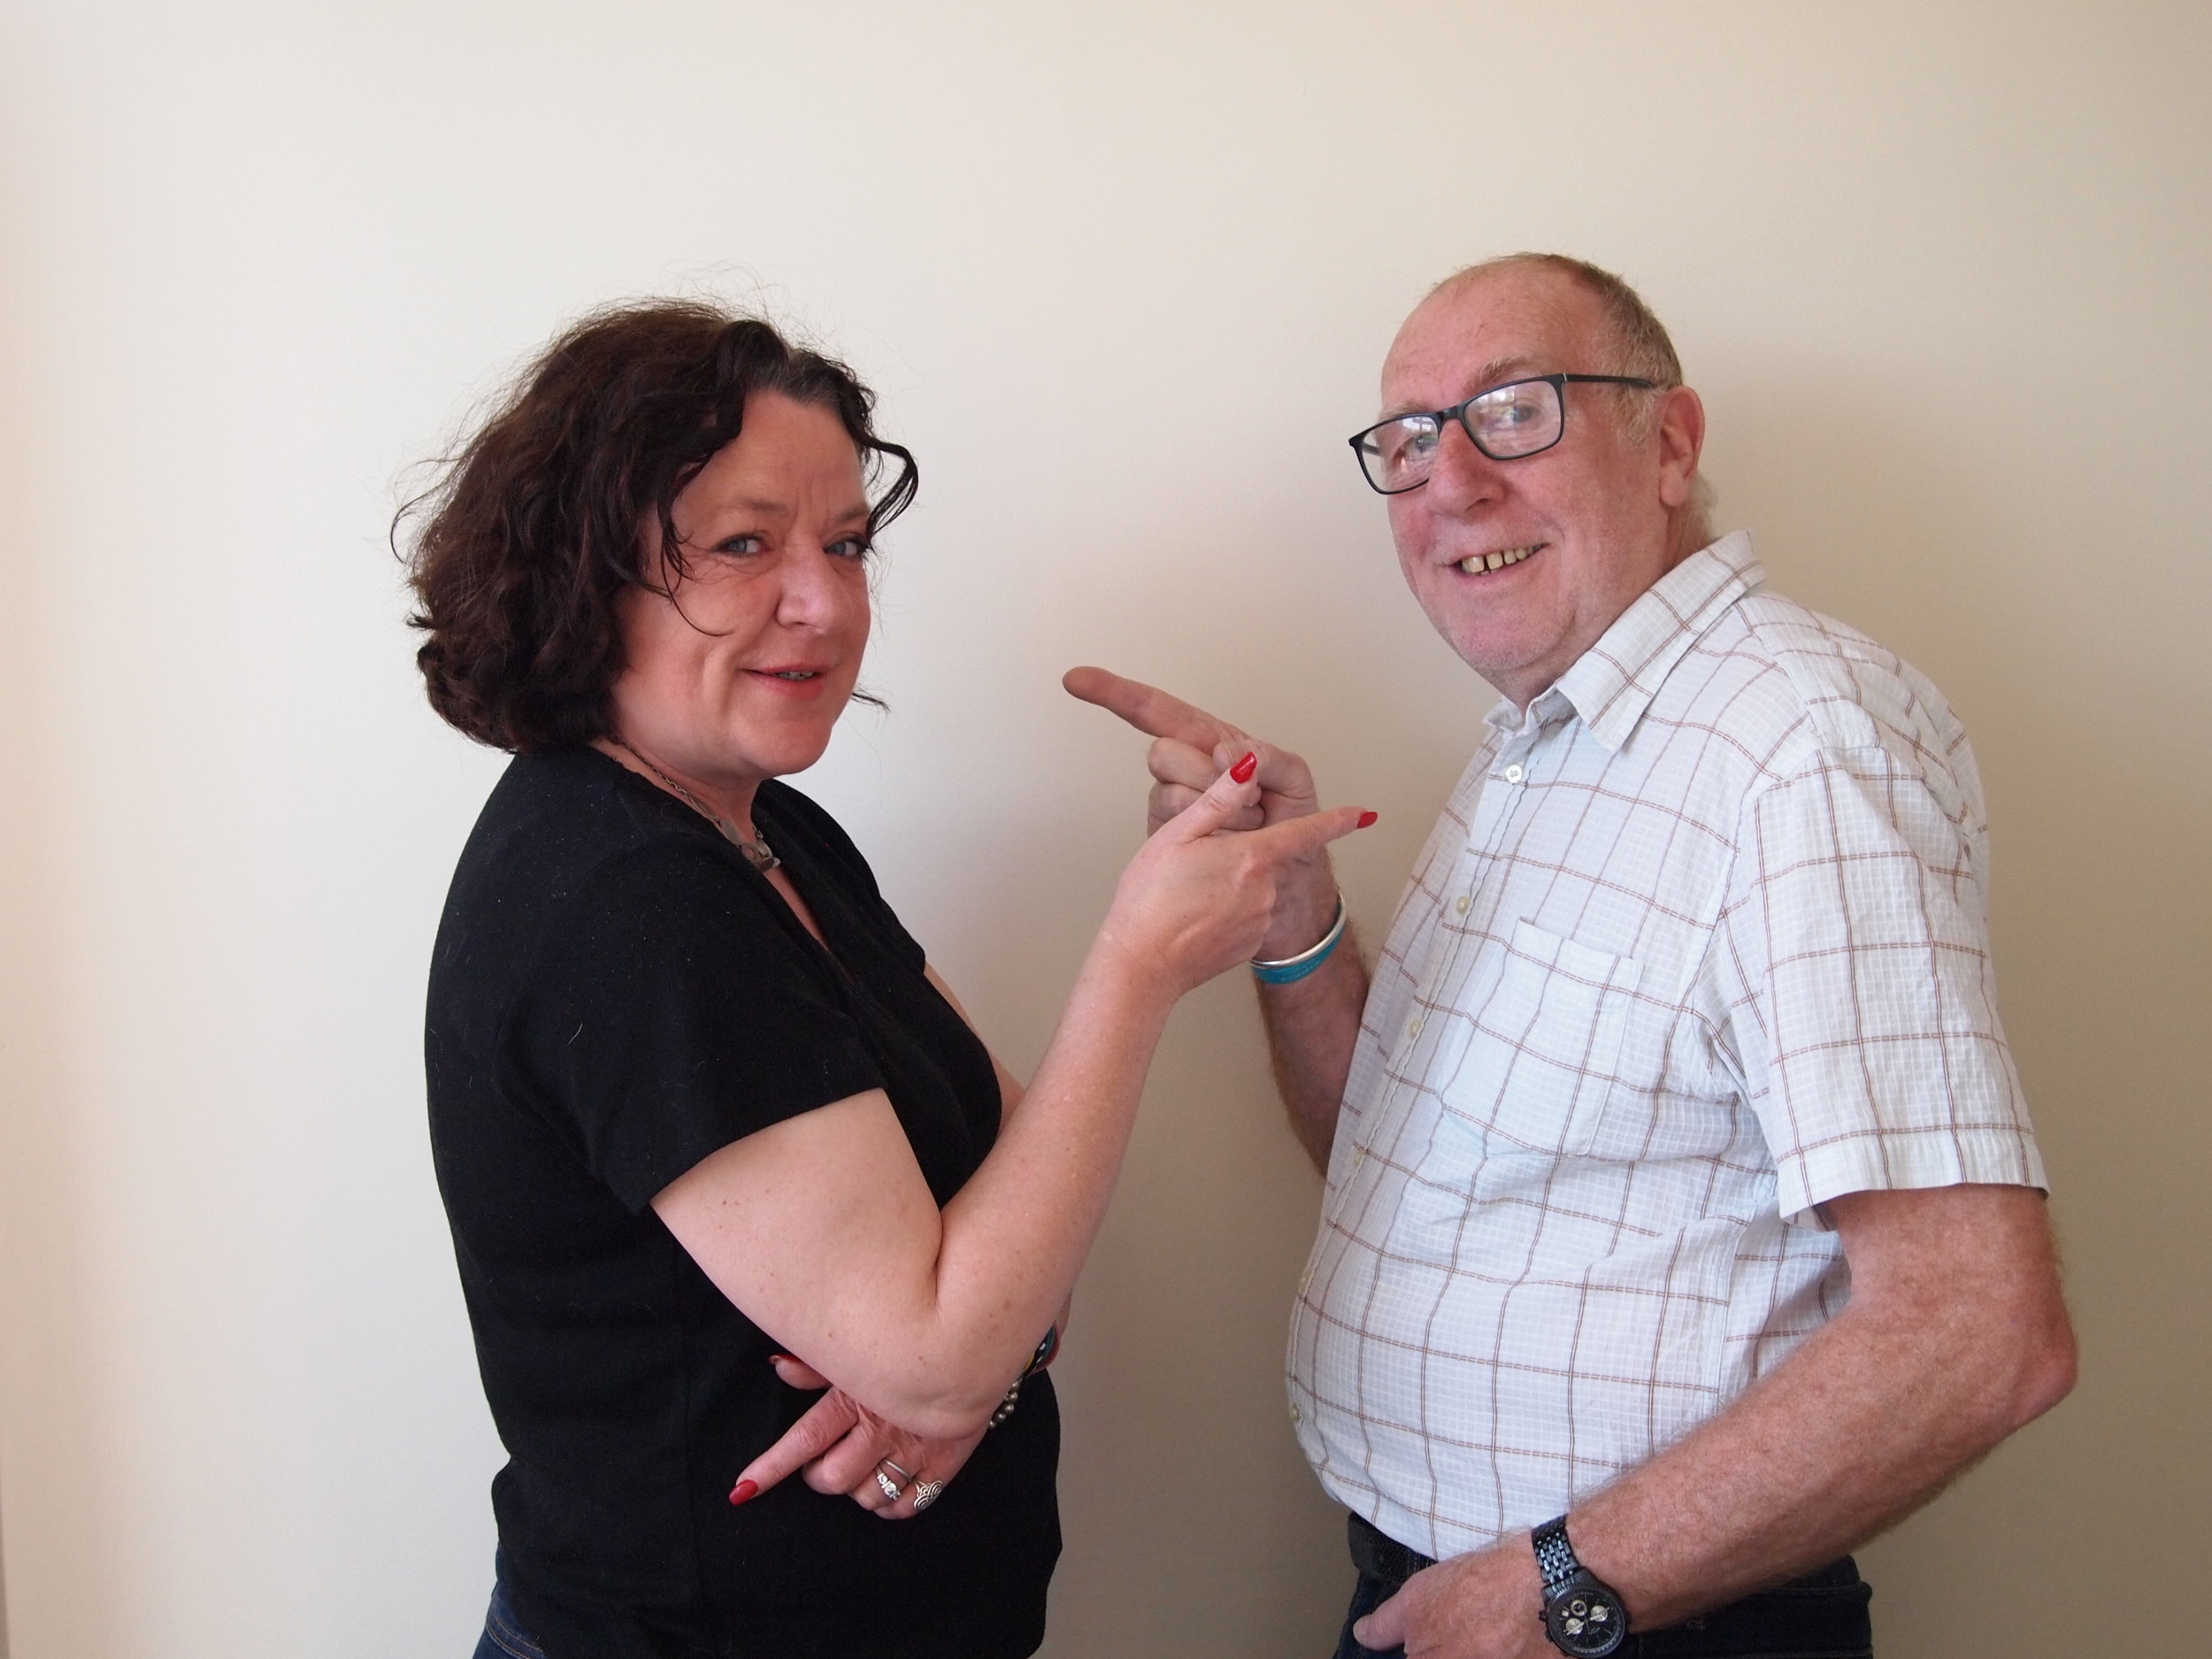 LOT 9   Co-host the morning show with Dougie and Cathie on YO1 radio Co present your own choice of music and banter on a truly local radio station. Prize donated by YO1 Radio   Current Bid £60